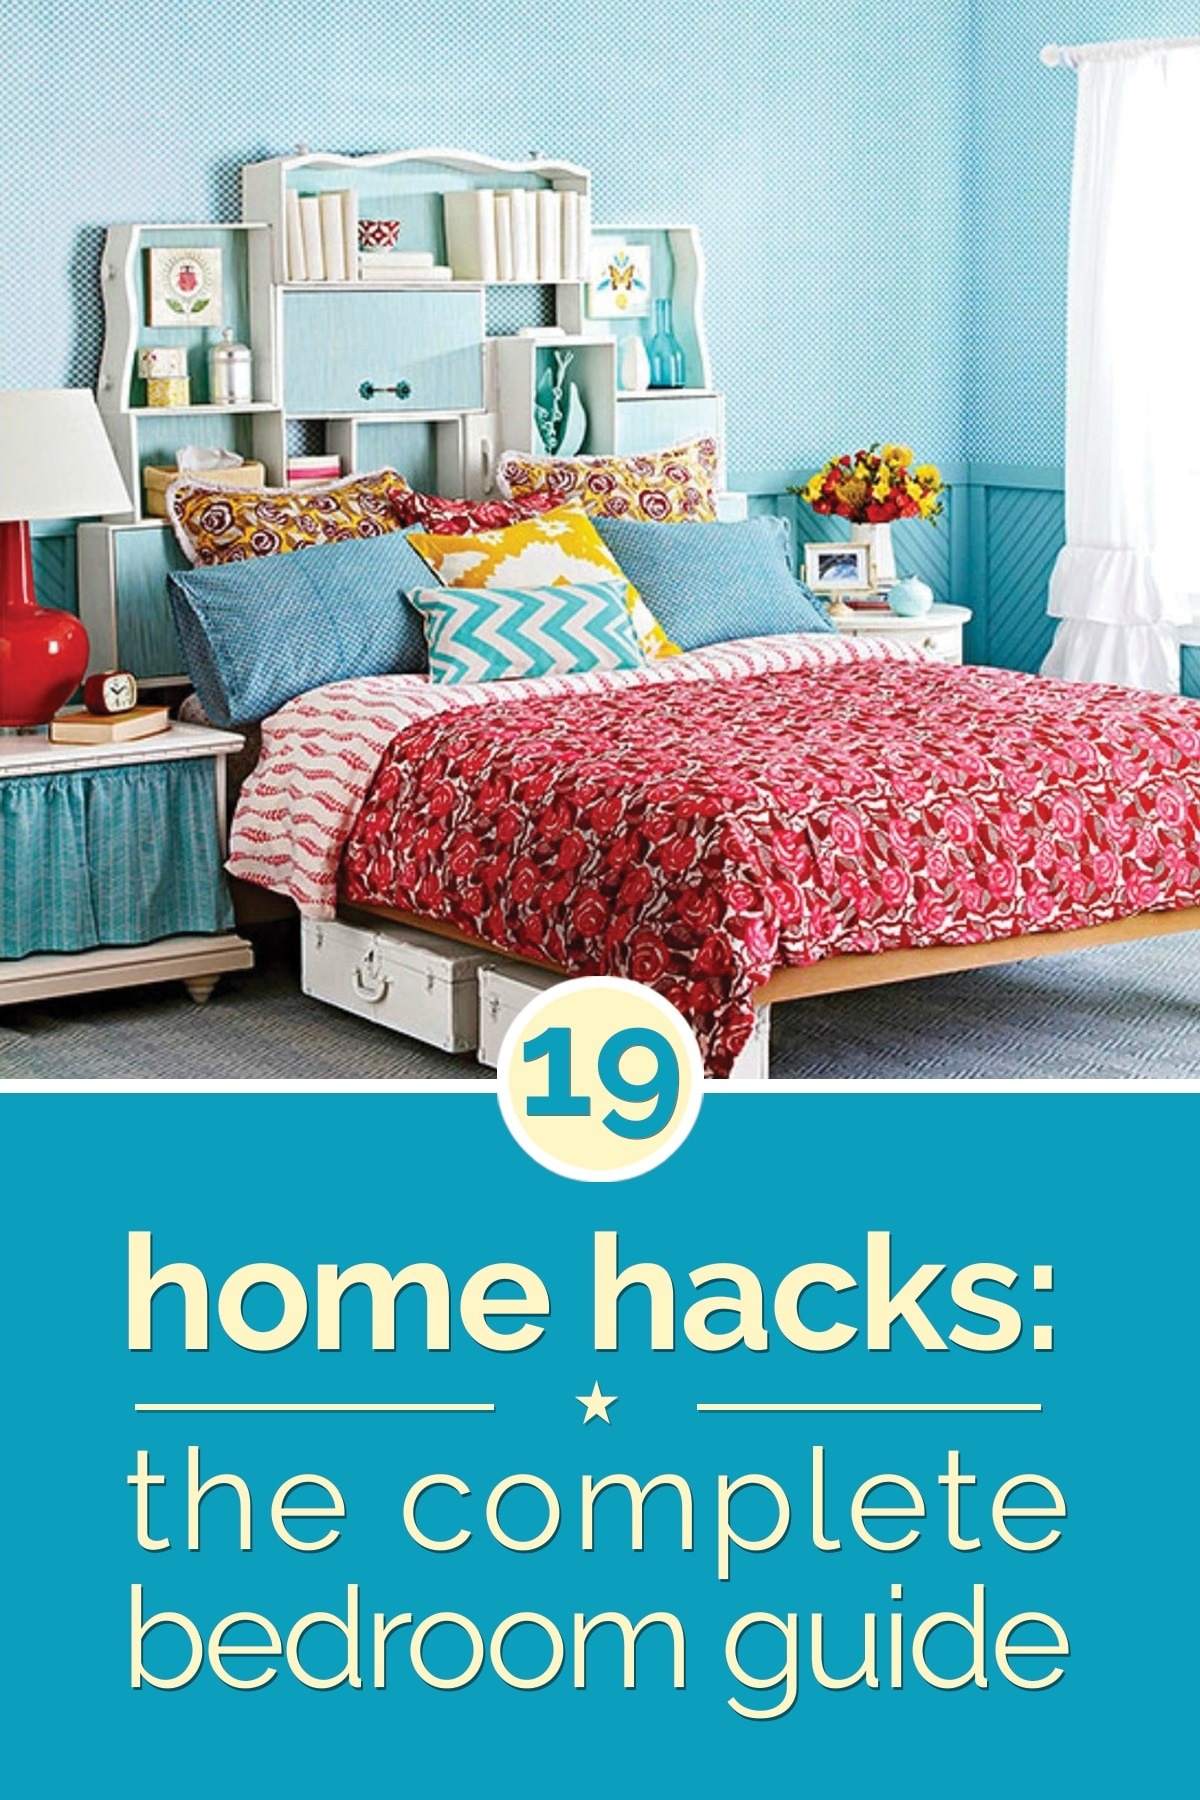 Diy home hacks bedroomHome Hacks  19 Tips to Organize Your Bedroom   thegoodstuff. Rearrange Your Bedroom. Home Design Ideas